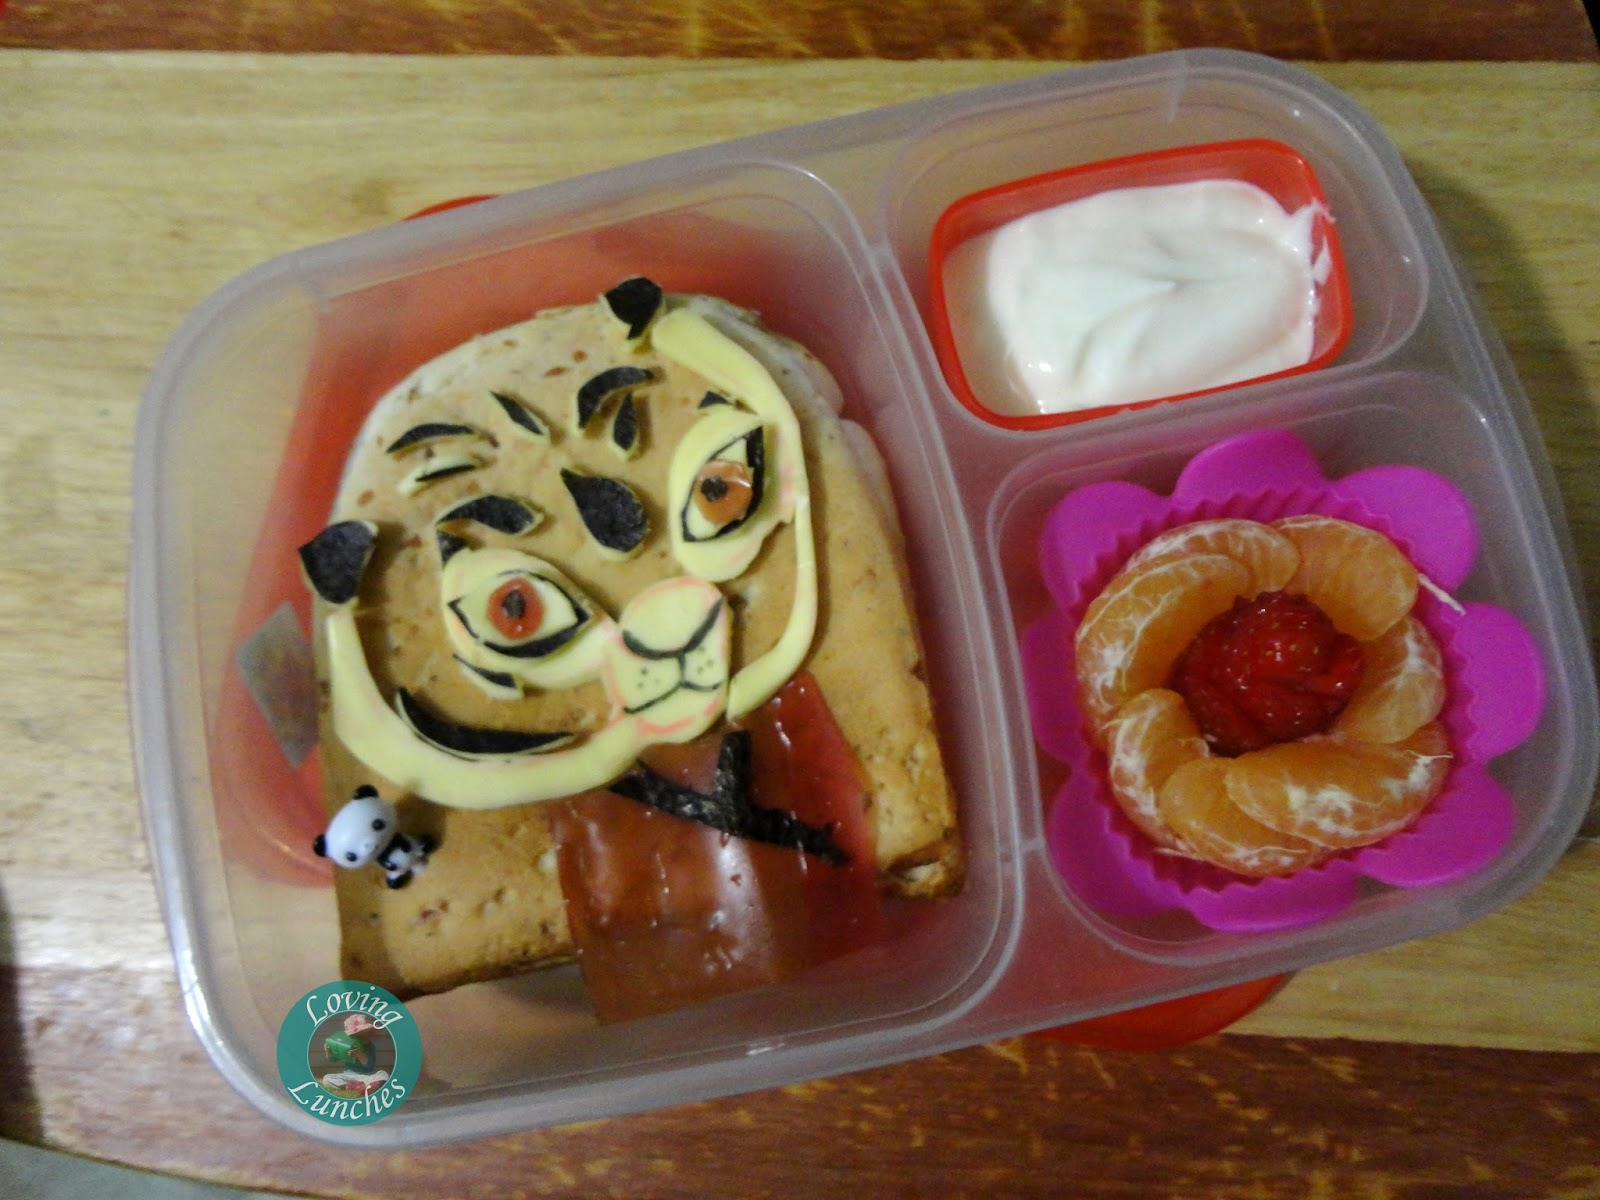 Loving Lunches: Kung Fu Panda Lunches of Awesomeness Tigress